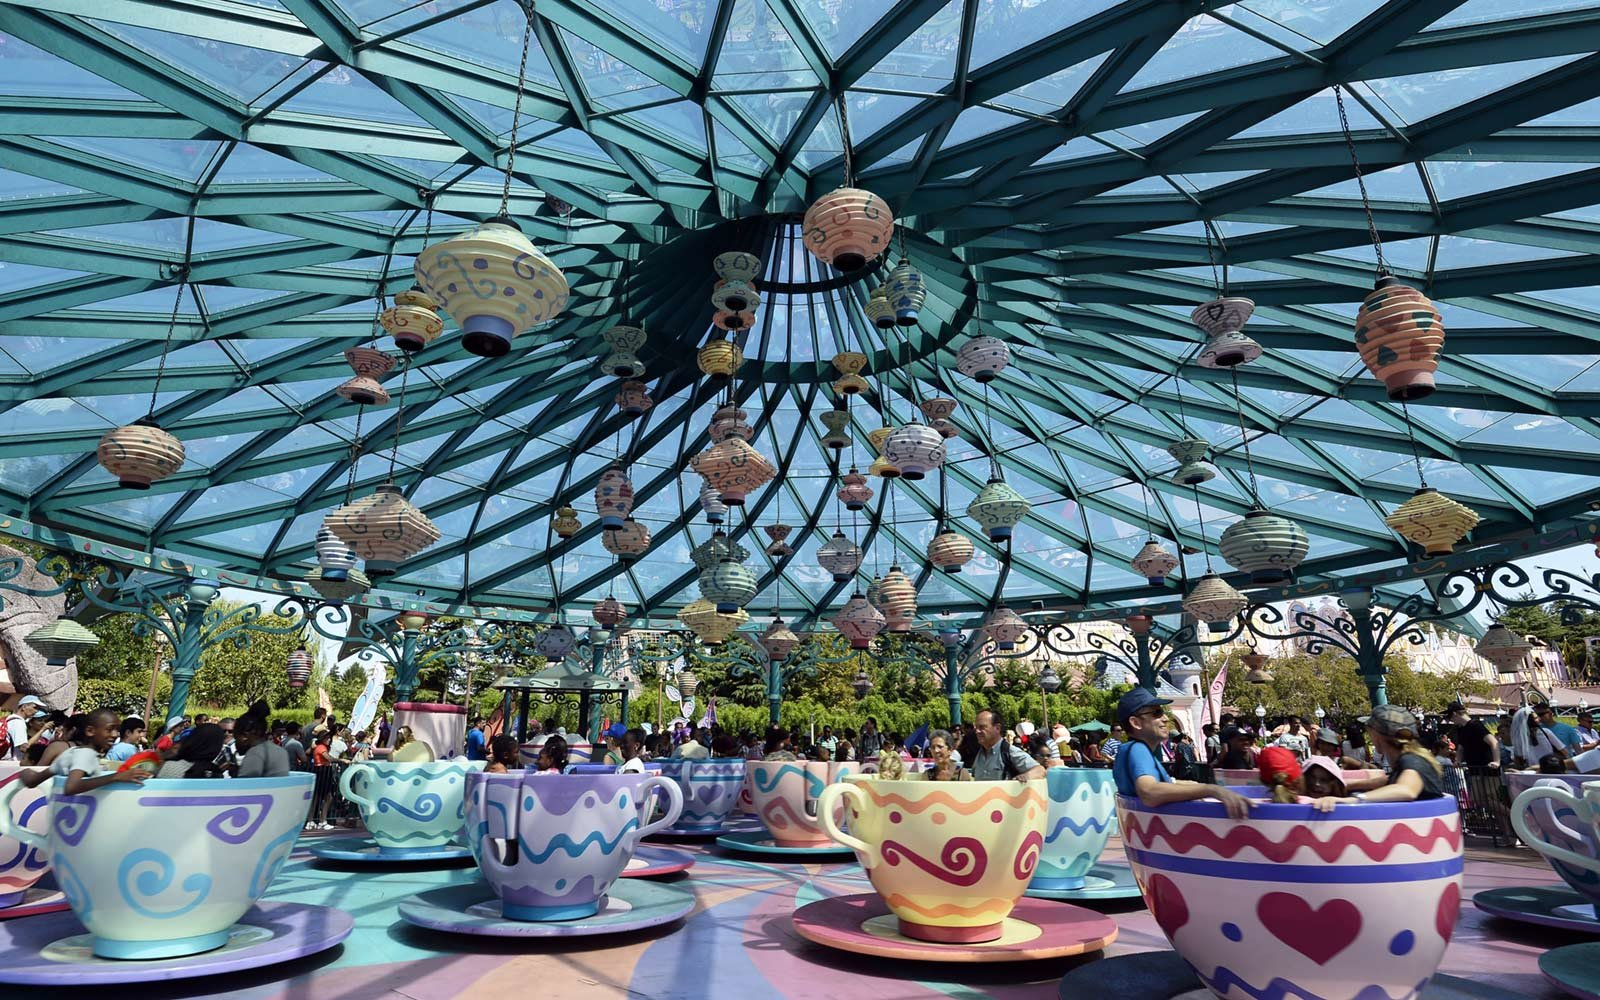 Mad Hatter's Tea Cup ride, Disneyland Paris, France